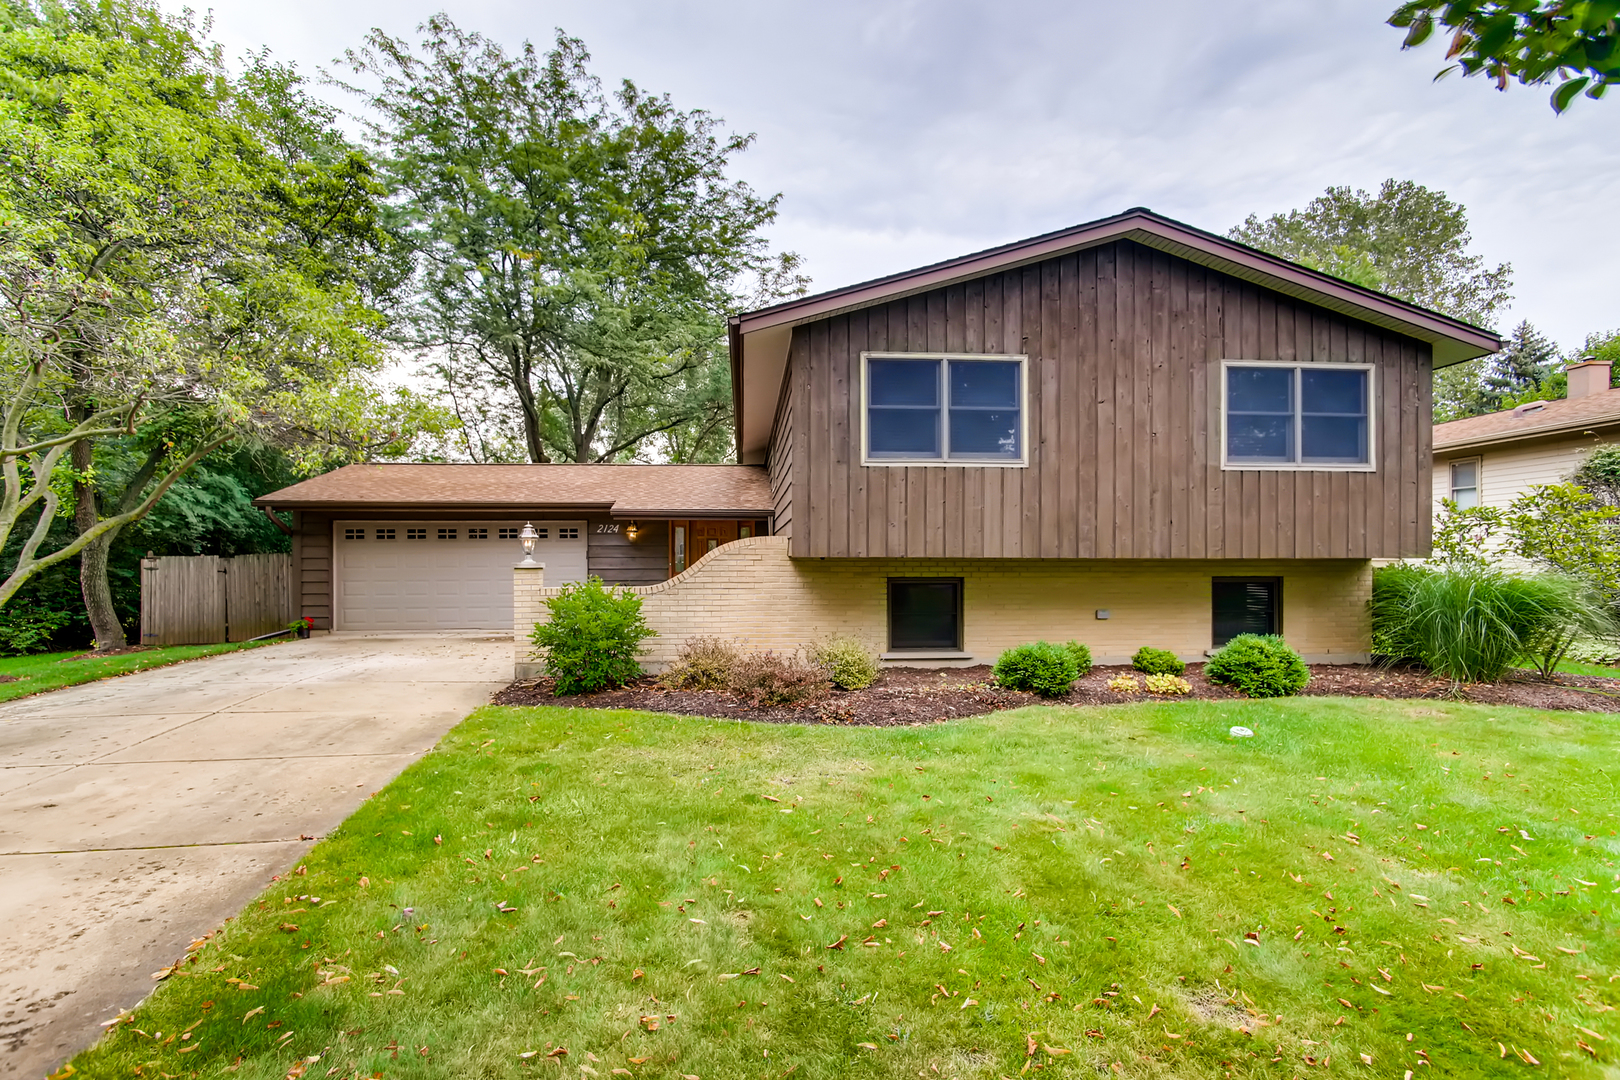 Photo for 2124 Midhurst Road, Downers Grove, IL 60516 (MLS # 10486305)